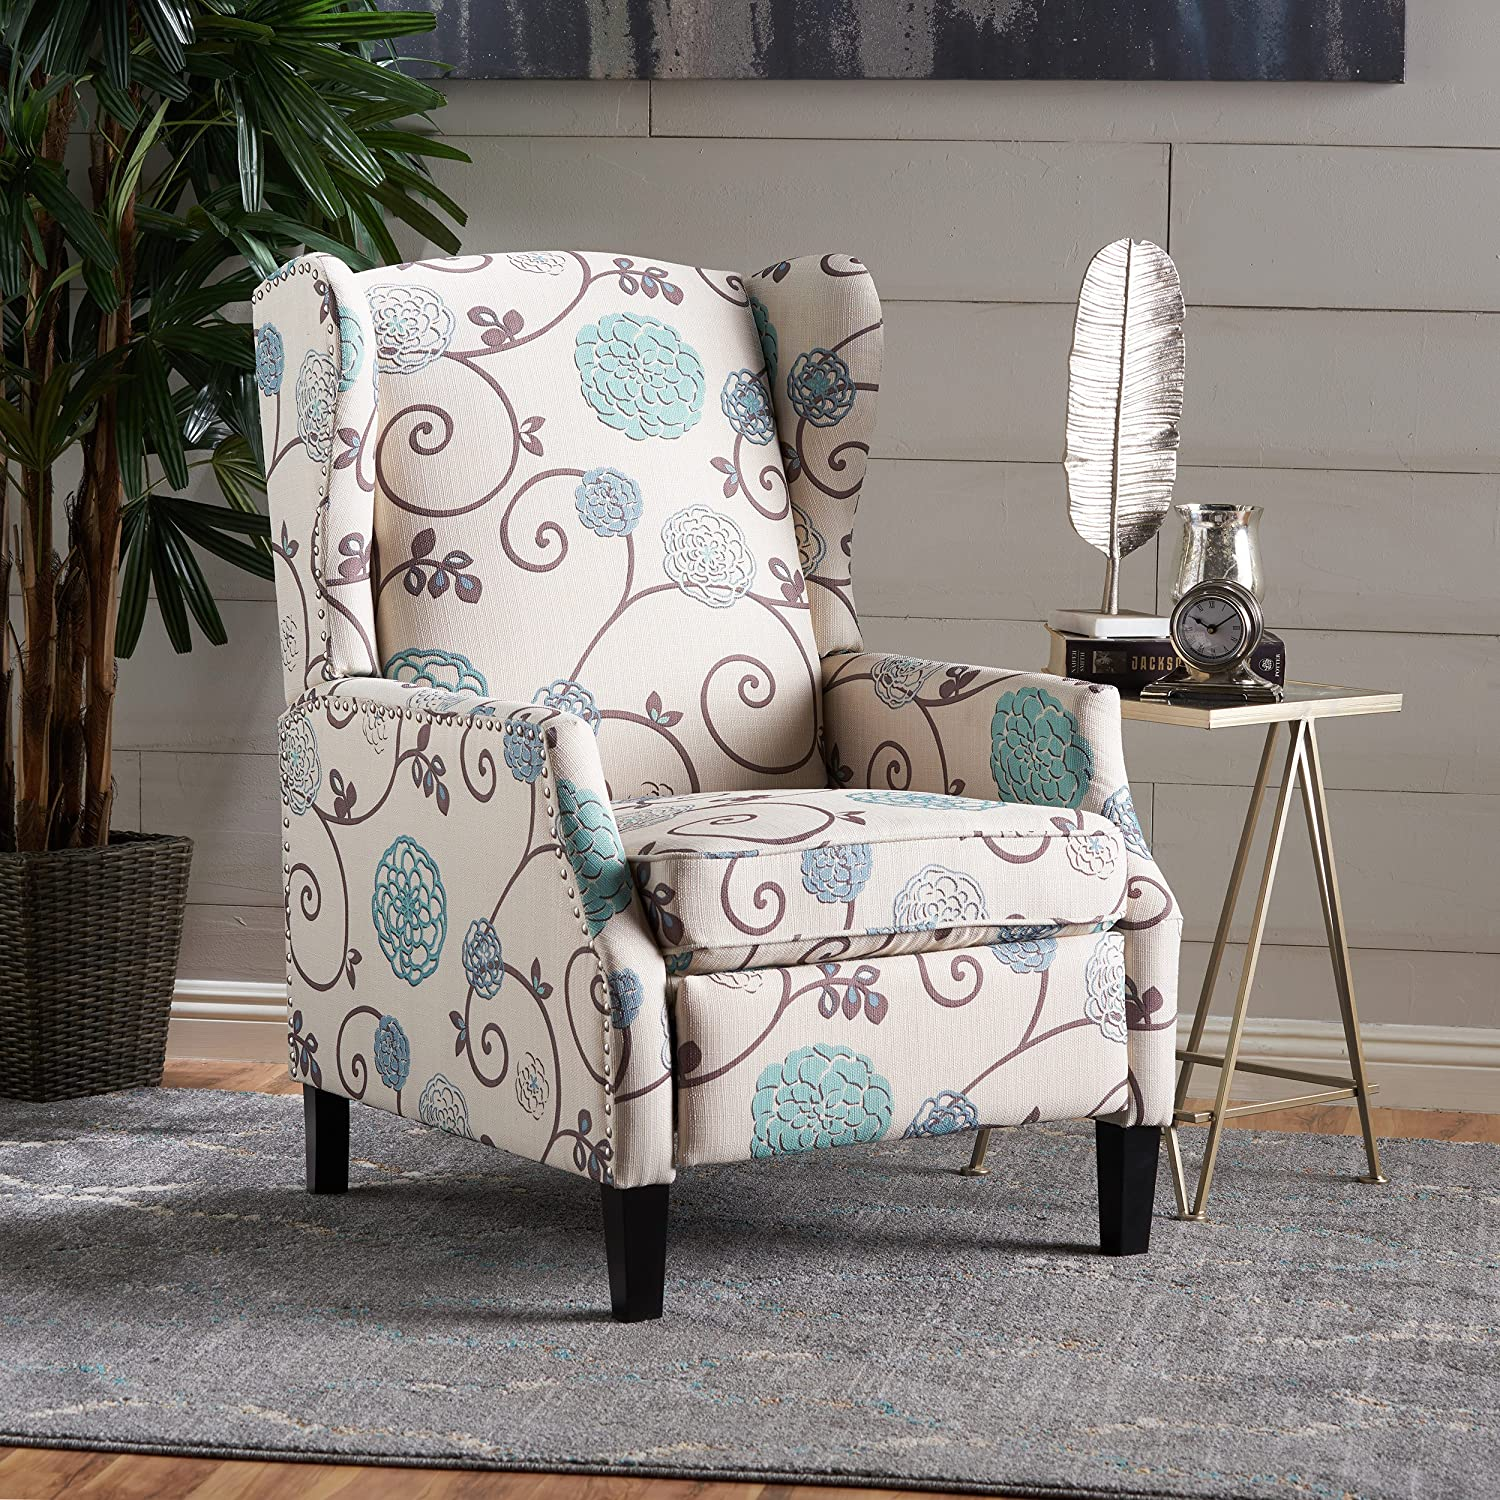 Christopher Knight Home 301080 Westeros Recliner Chair, White & Blue Floral